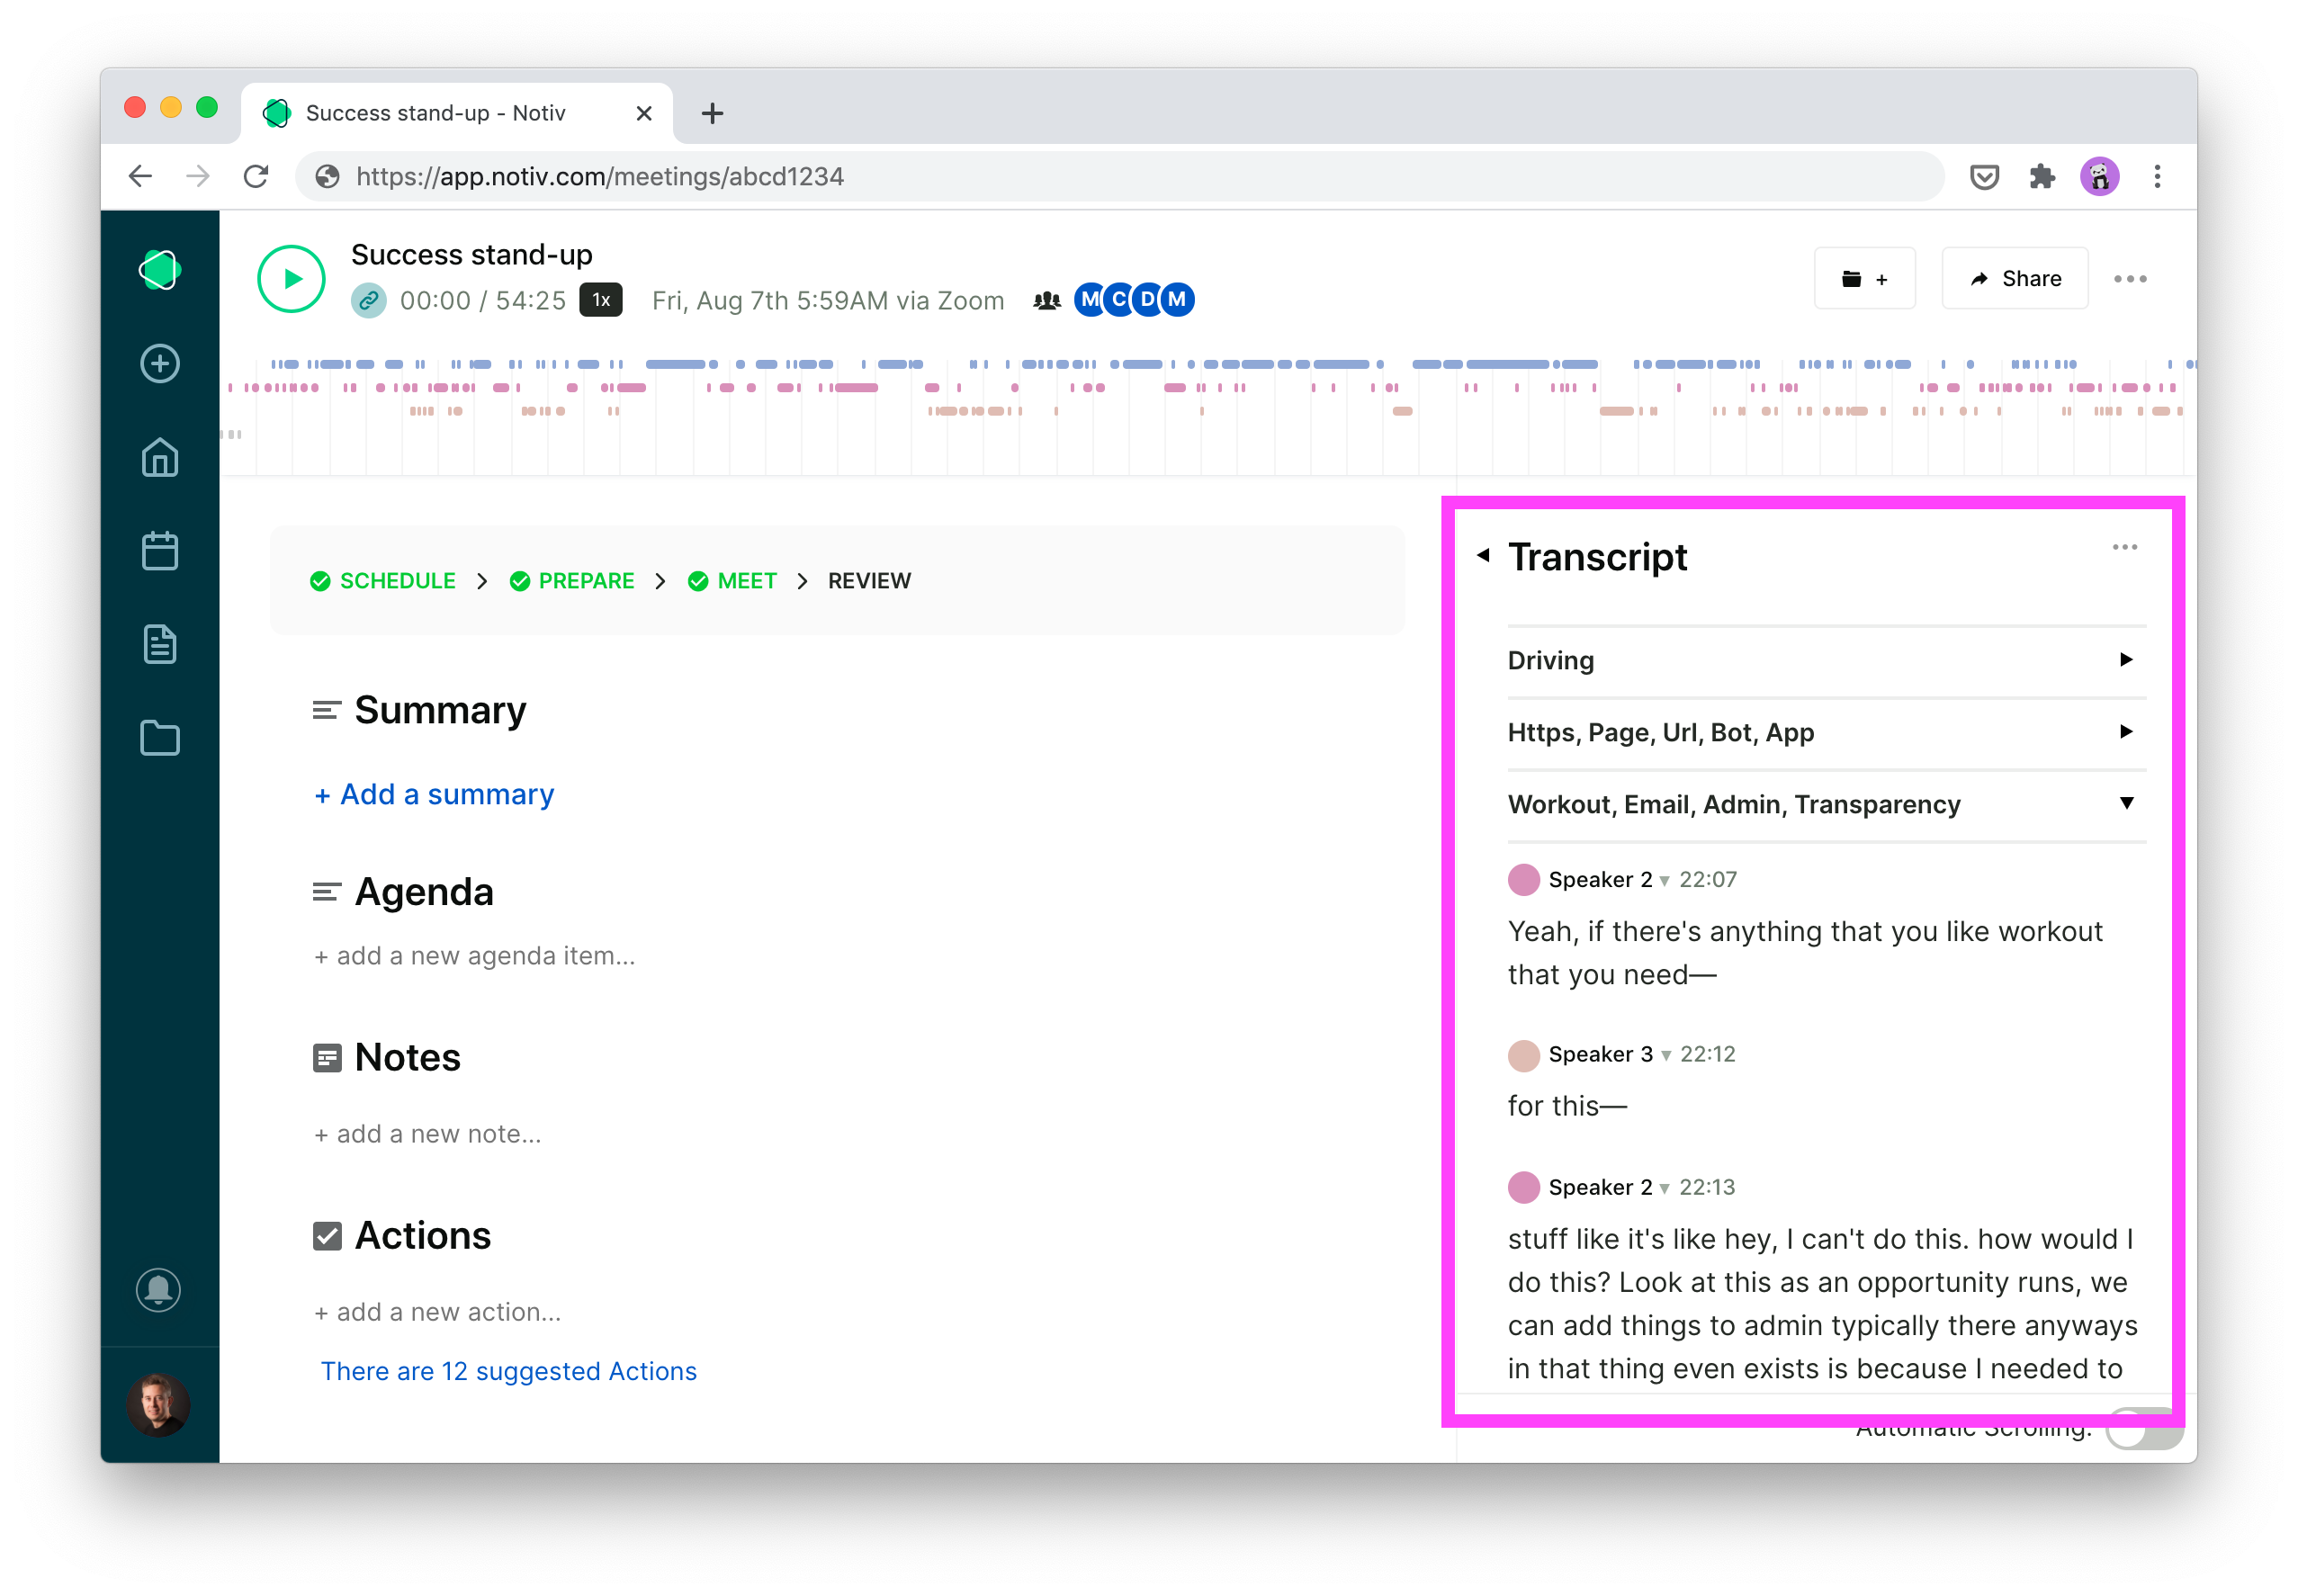 Notiv shows the transcript, AI talking points and Speakers in the right hand pane